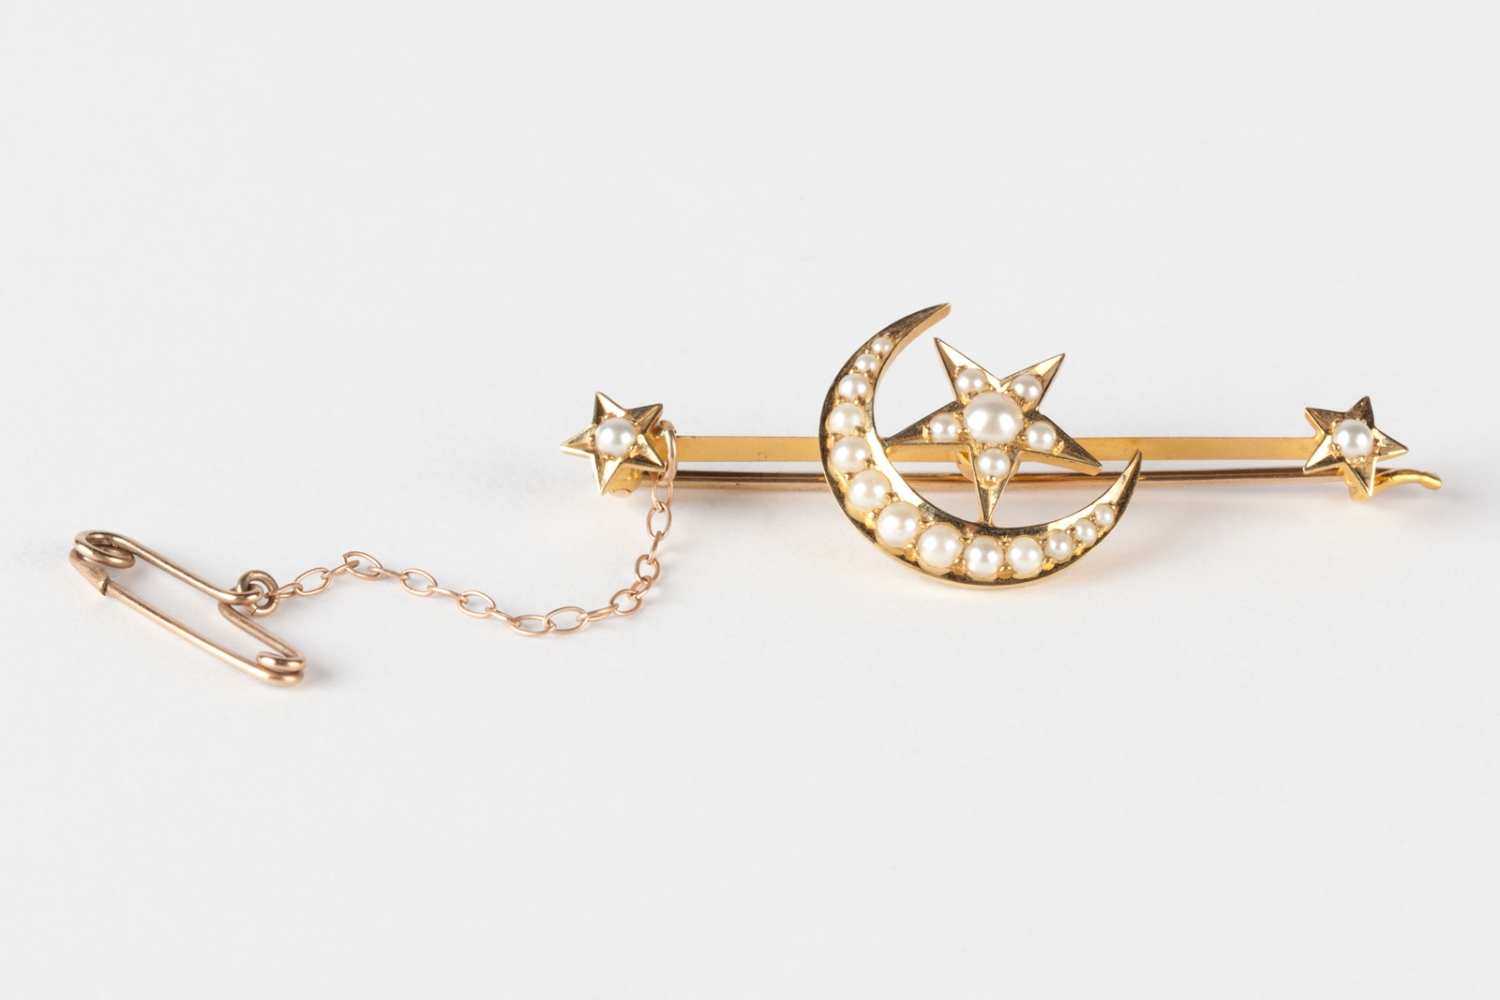 A gold bar brooch with a star and crescent moon design set with pearls. Made by Hardy Bros, Sydney, circa 1886